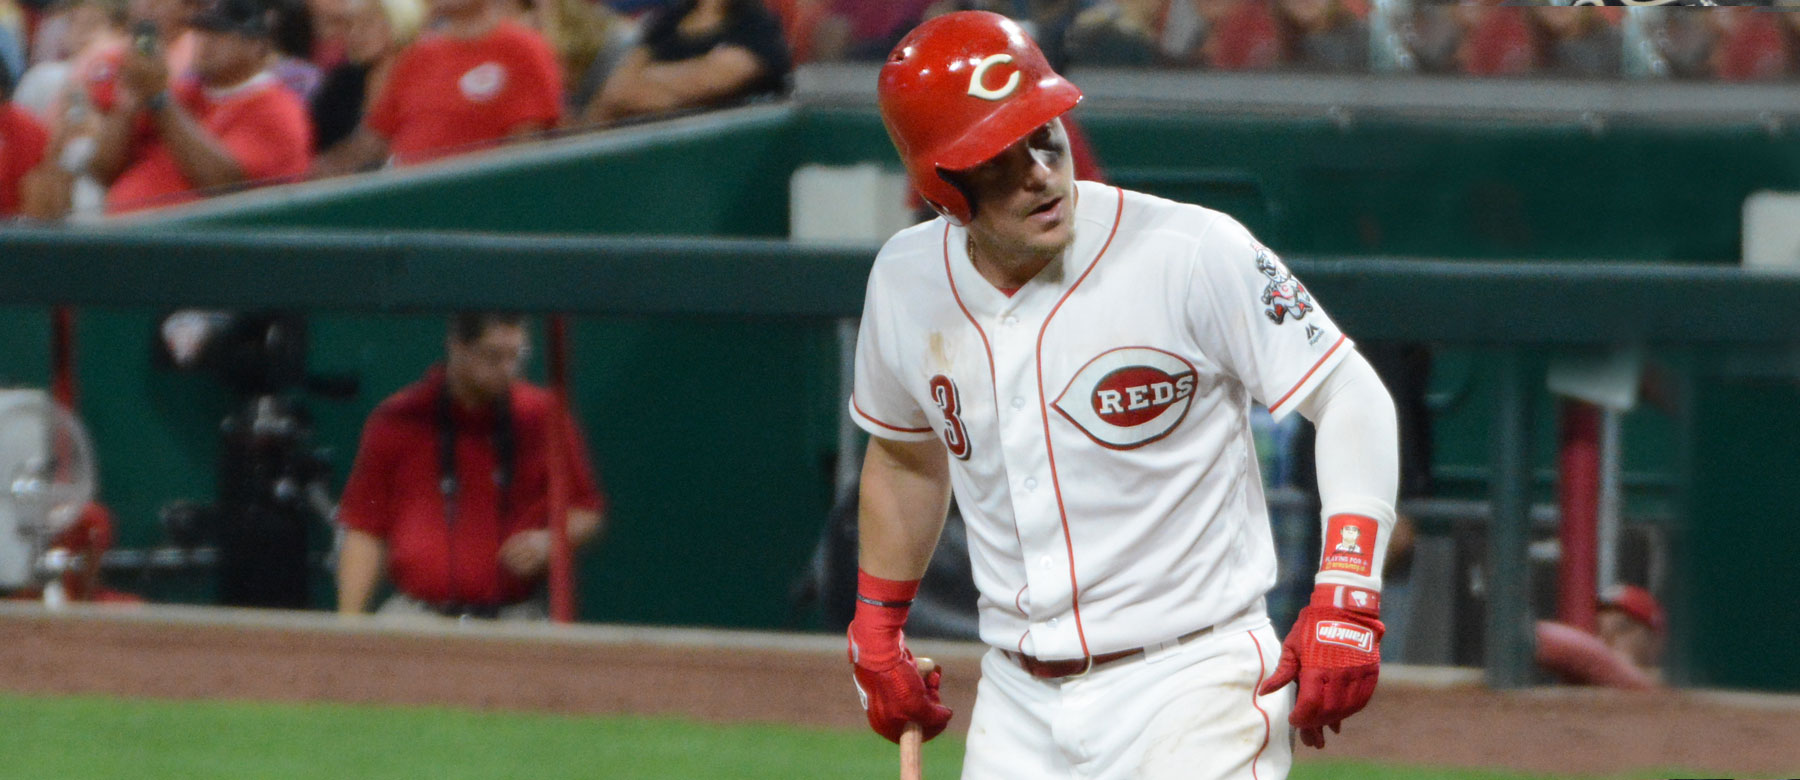 Reds: Gennett out for 8-12 weeks, and a look at what's next